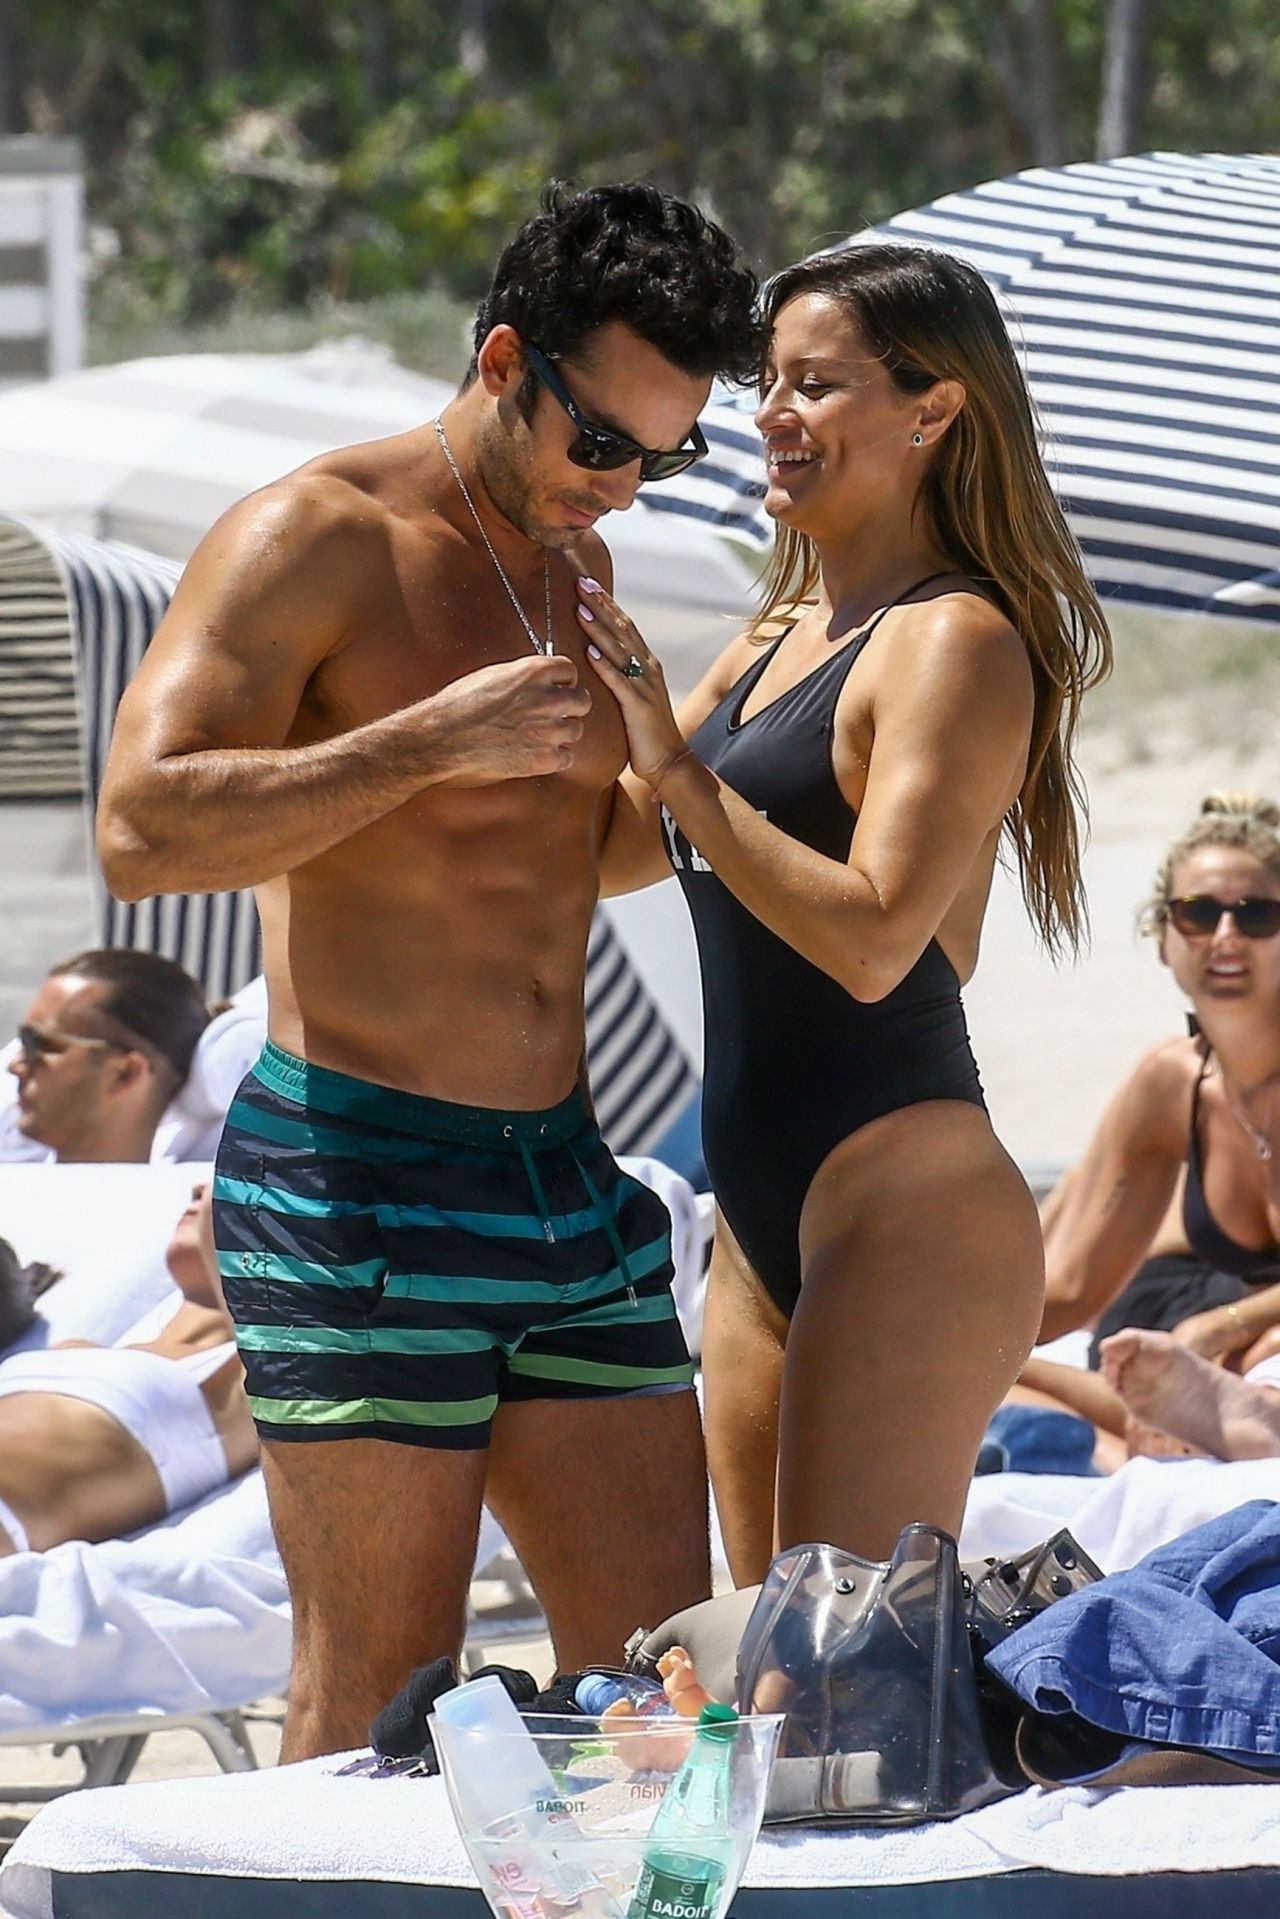 Lola Ponce In Swimsuit Vacation In Miami 03 23 2018